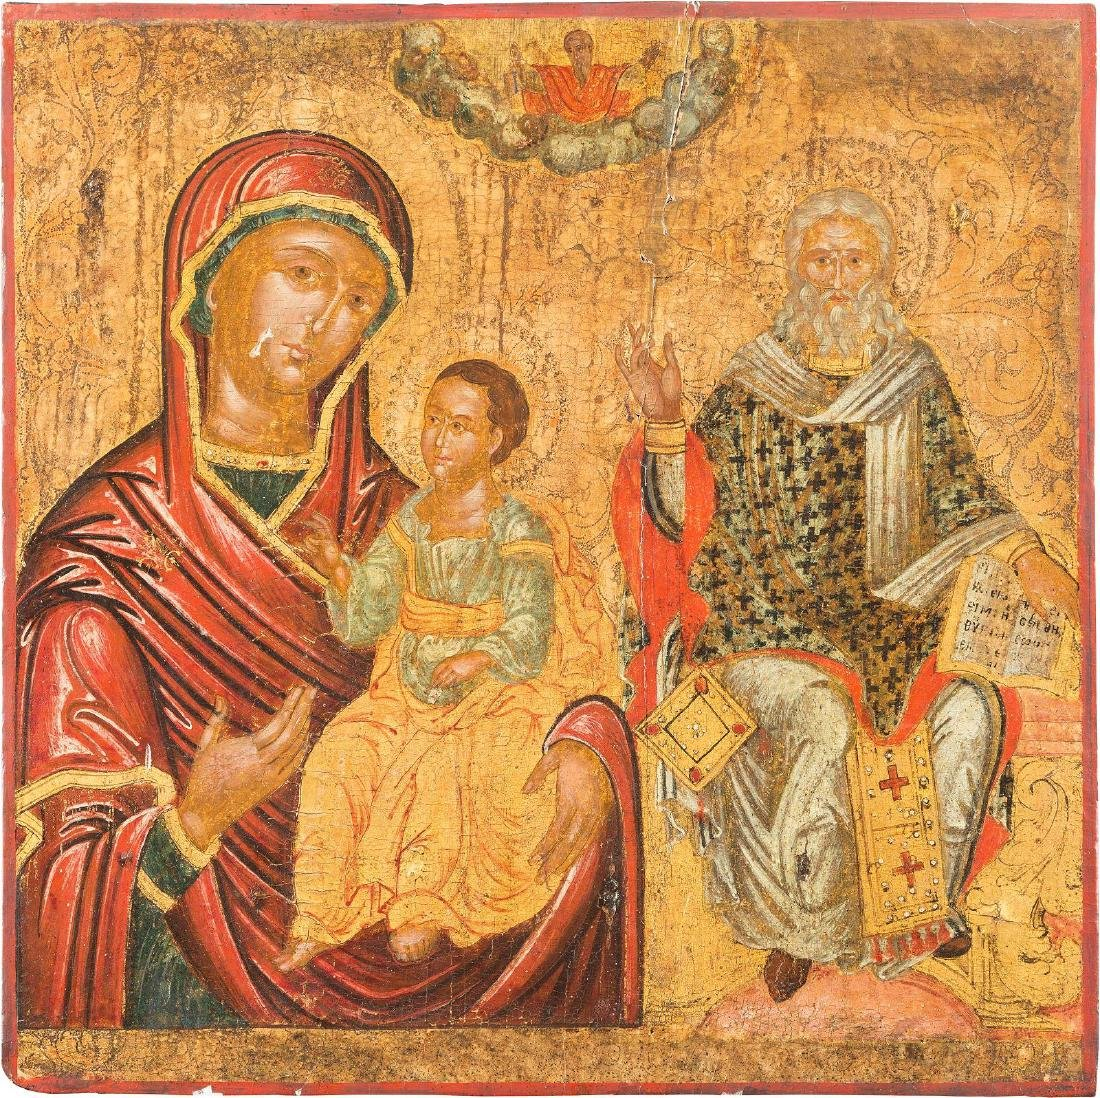 A LARGE ICON SHOWING THE HODIGITRIA MOTHER OF GOD AND A